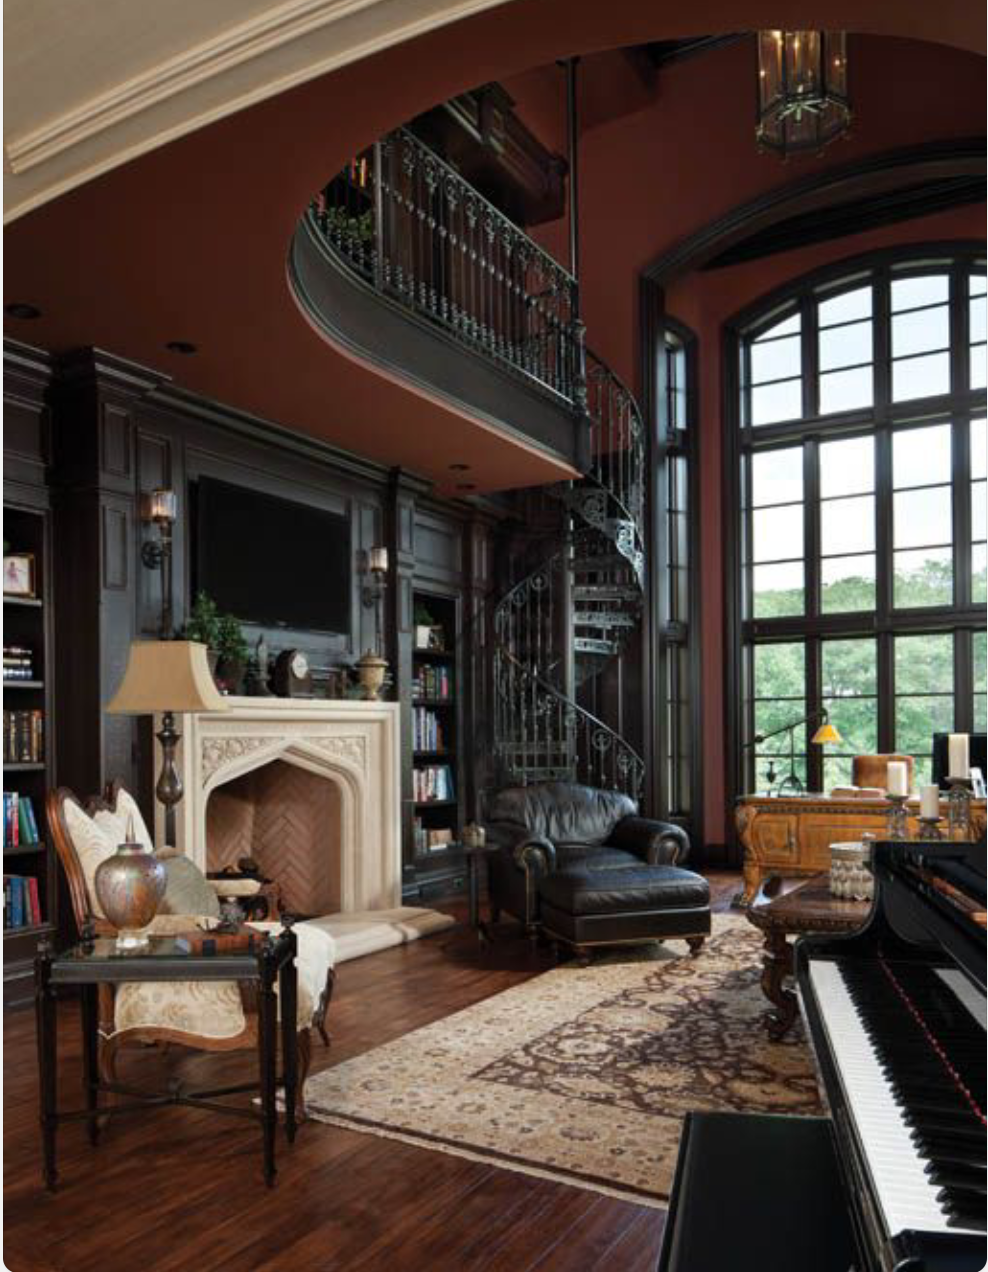 Delicieux Home Library ~ 2 Story With Spiral Staircase, Fireplace, And Large Arched  Window